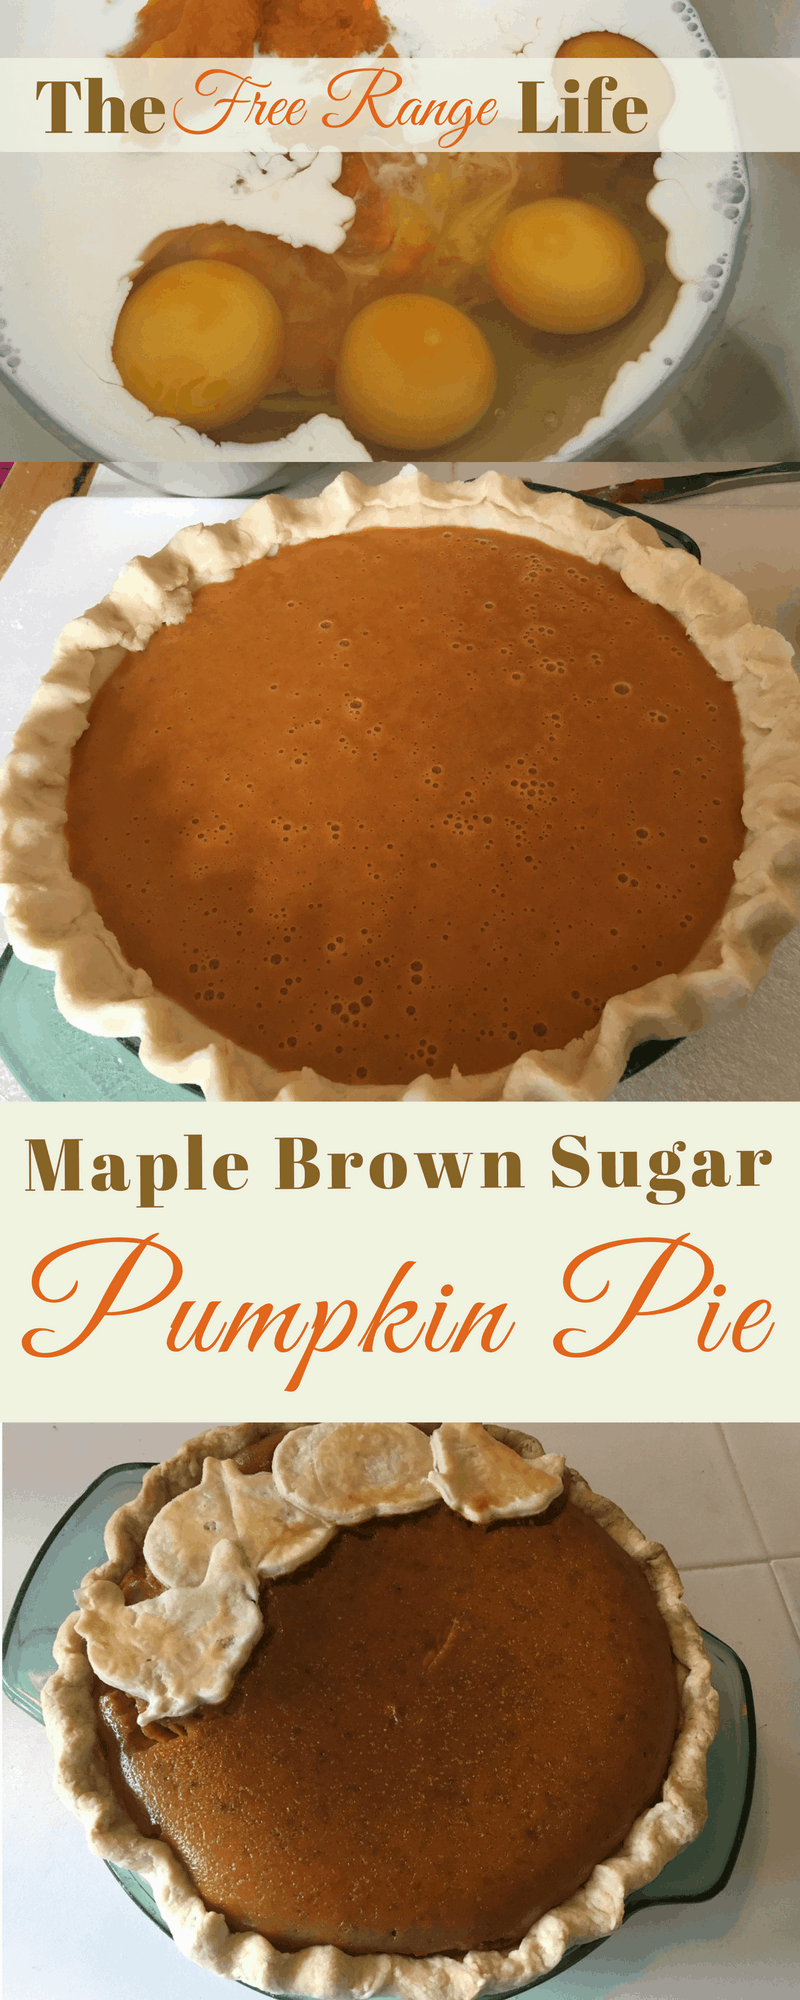 maple-brown-sugar-pumpkin-pie